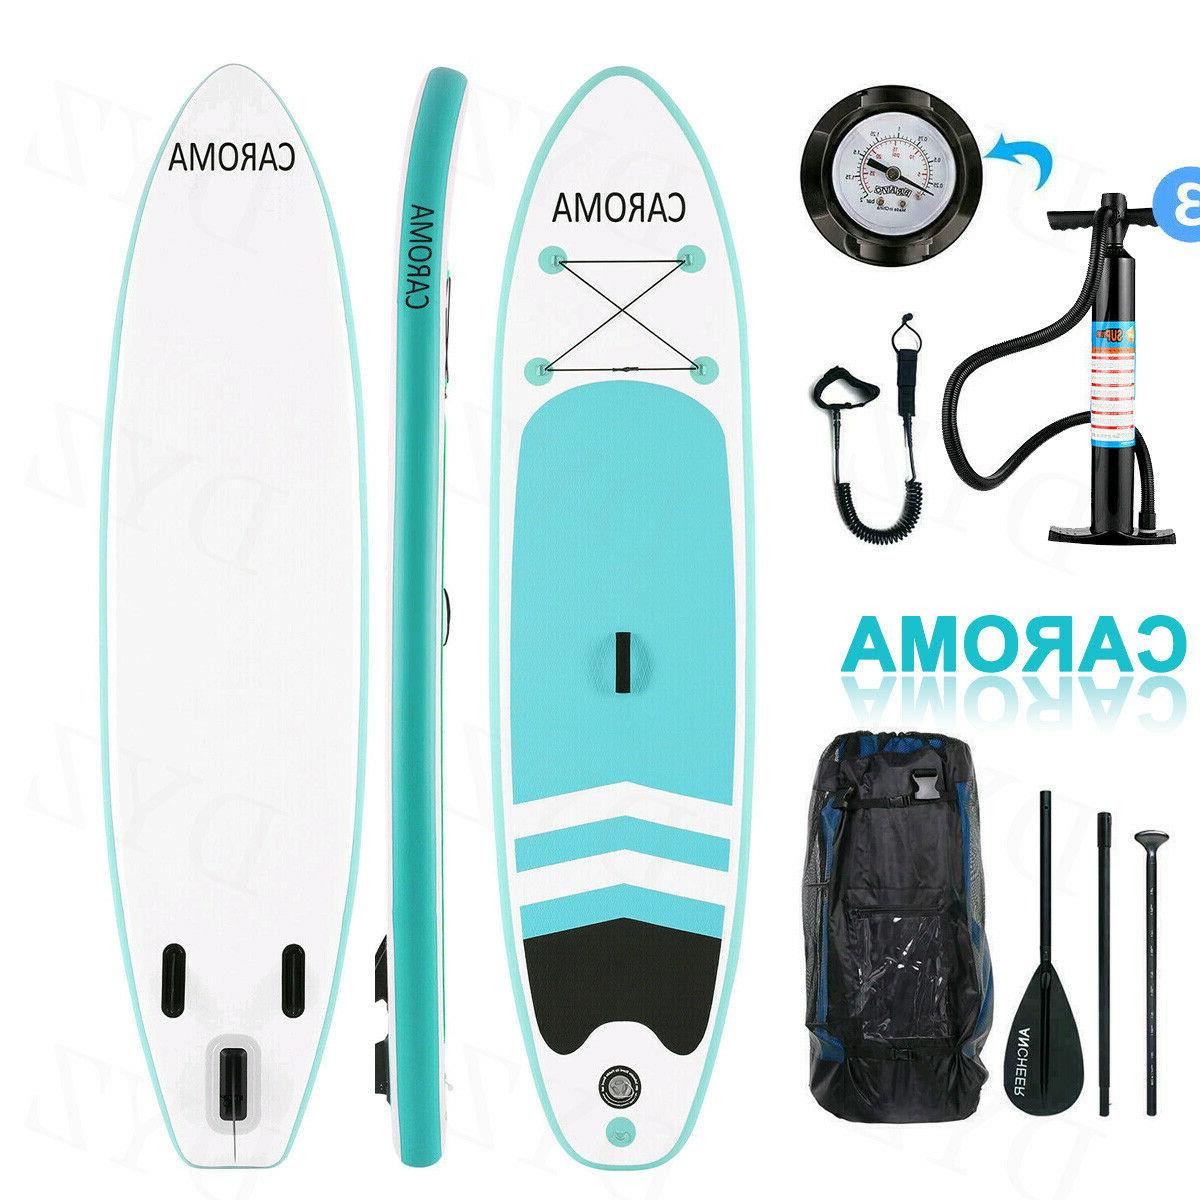 CAROMA 10' Up Paddle